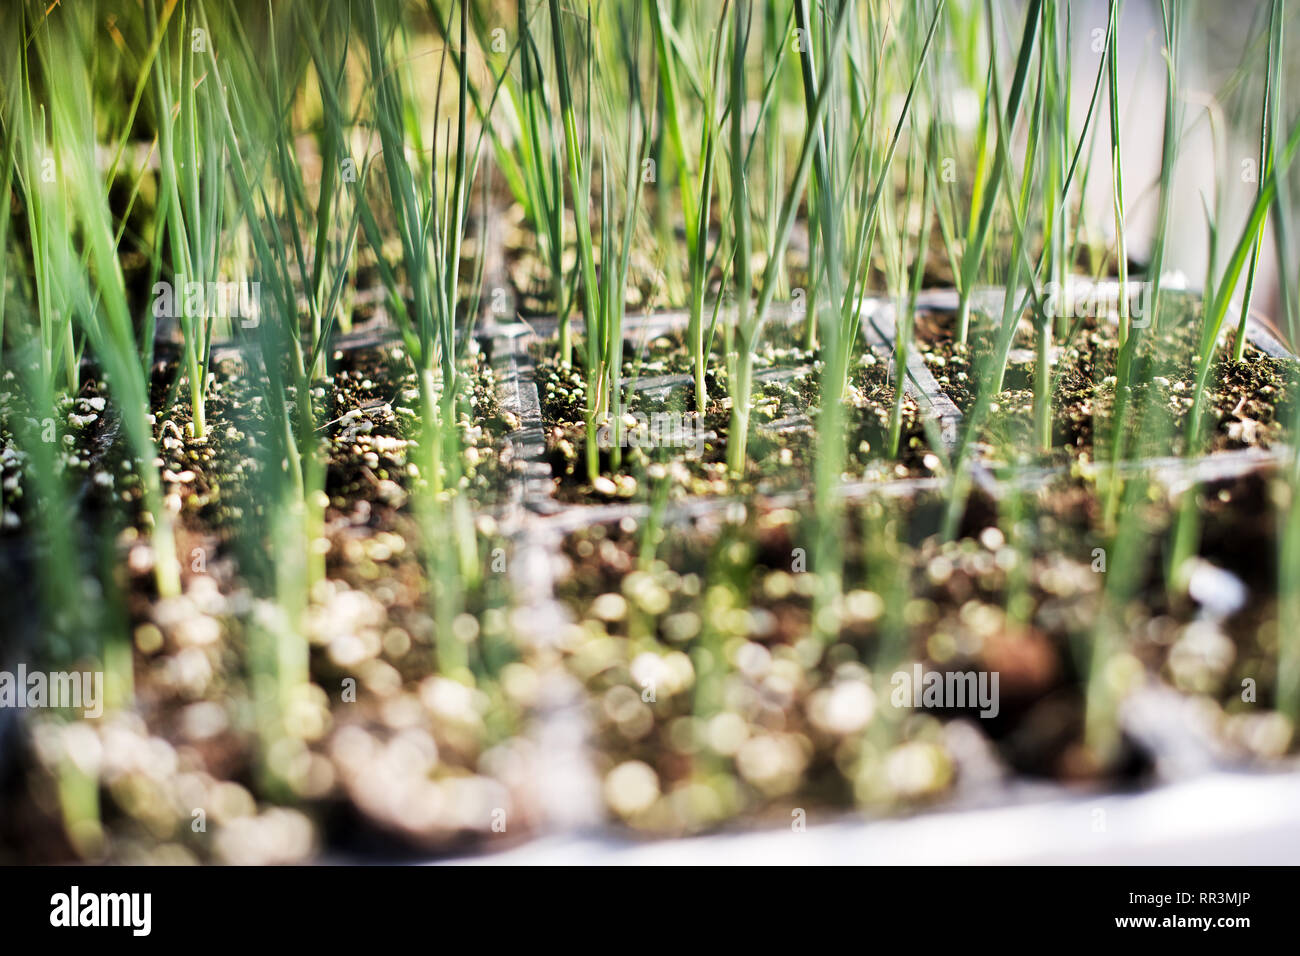 Young leek seedlings redy for transplanting in trays on a farm in a close up low angle view - Stock Image